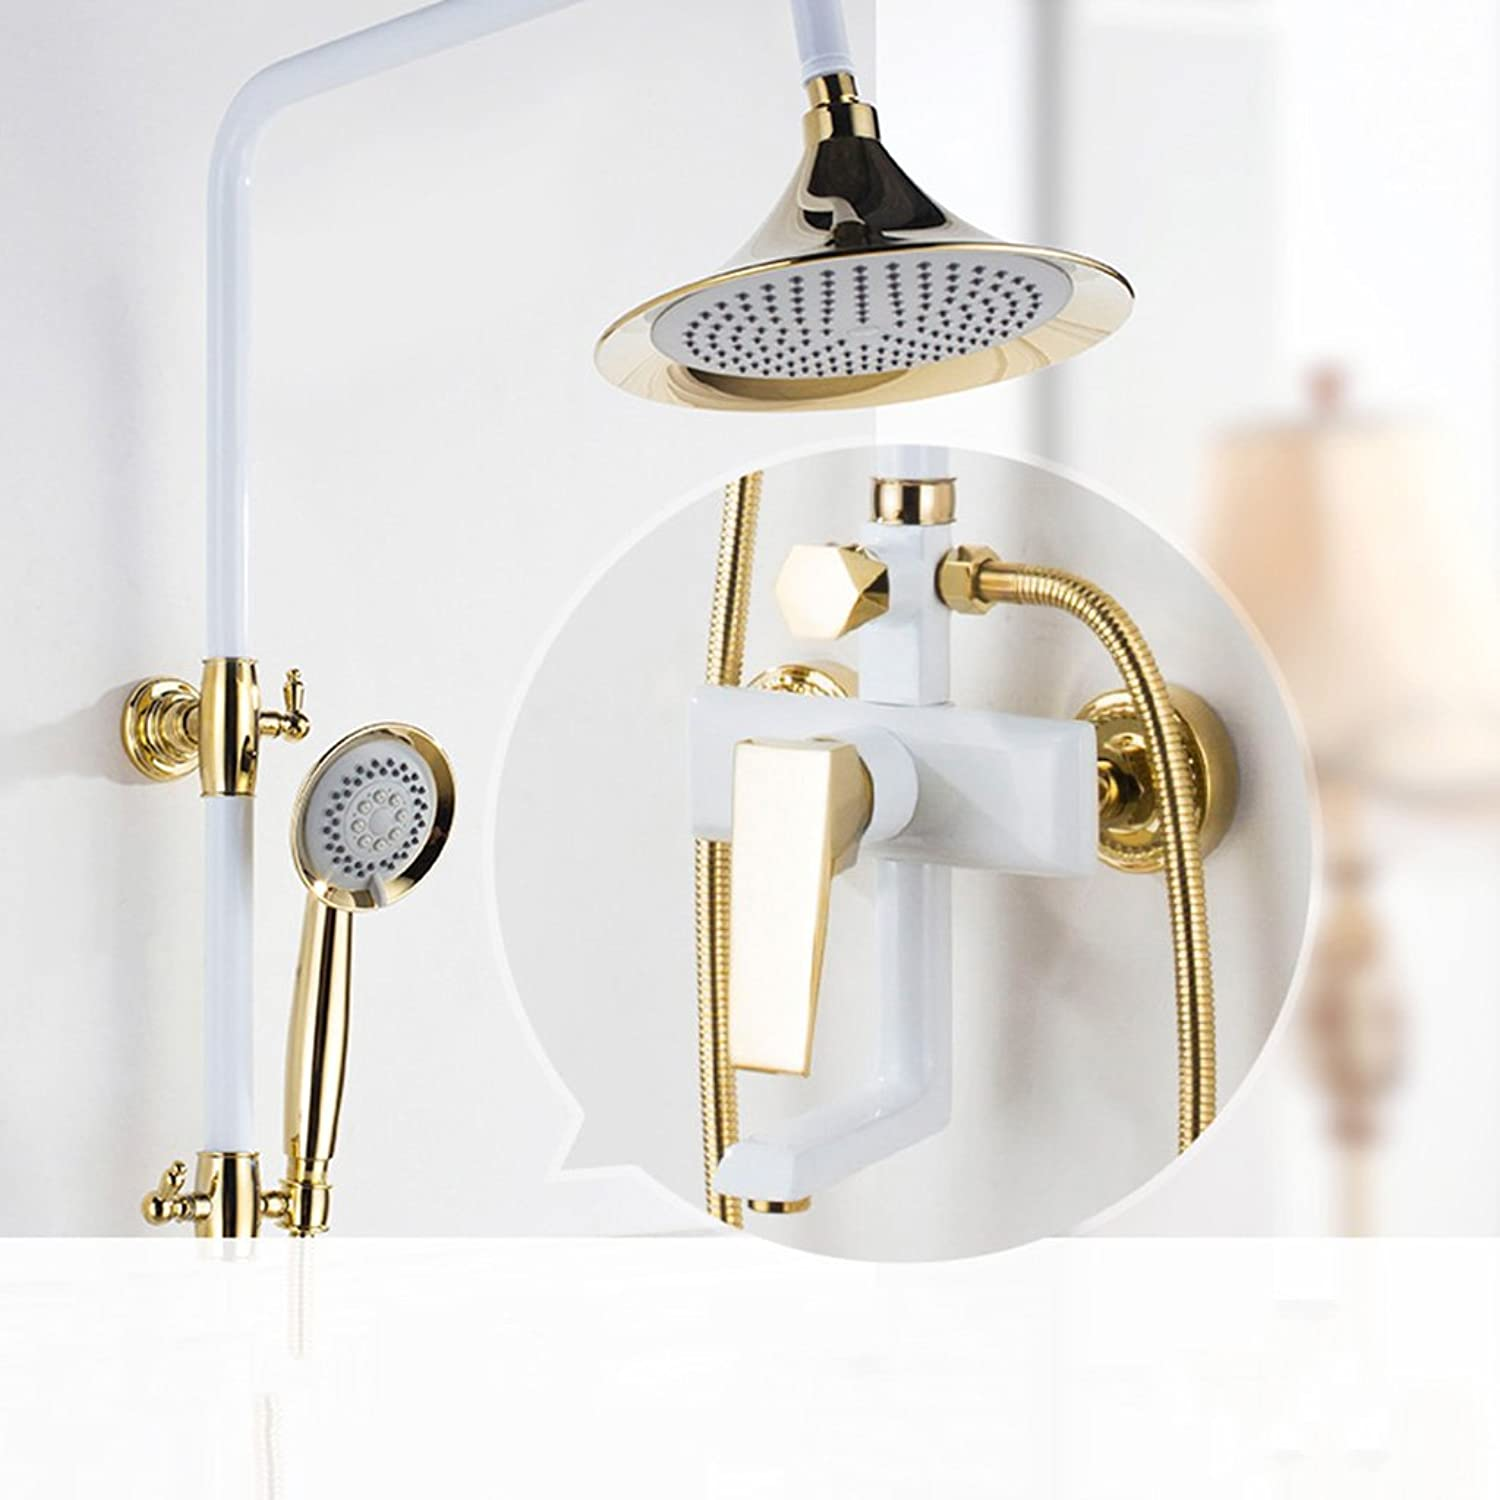 Cqq Bathroom shower Full copper white hot and cold shower Device American style shower set Shower mixing valve Faucet shower Device